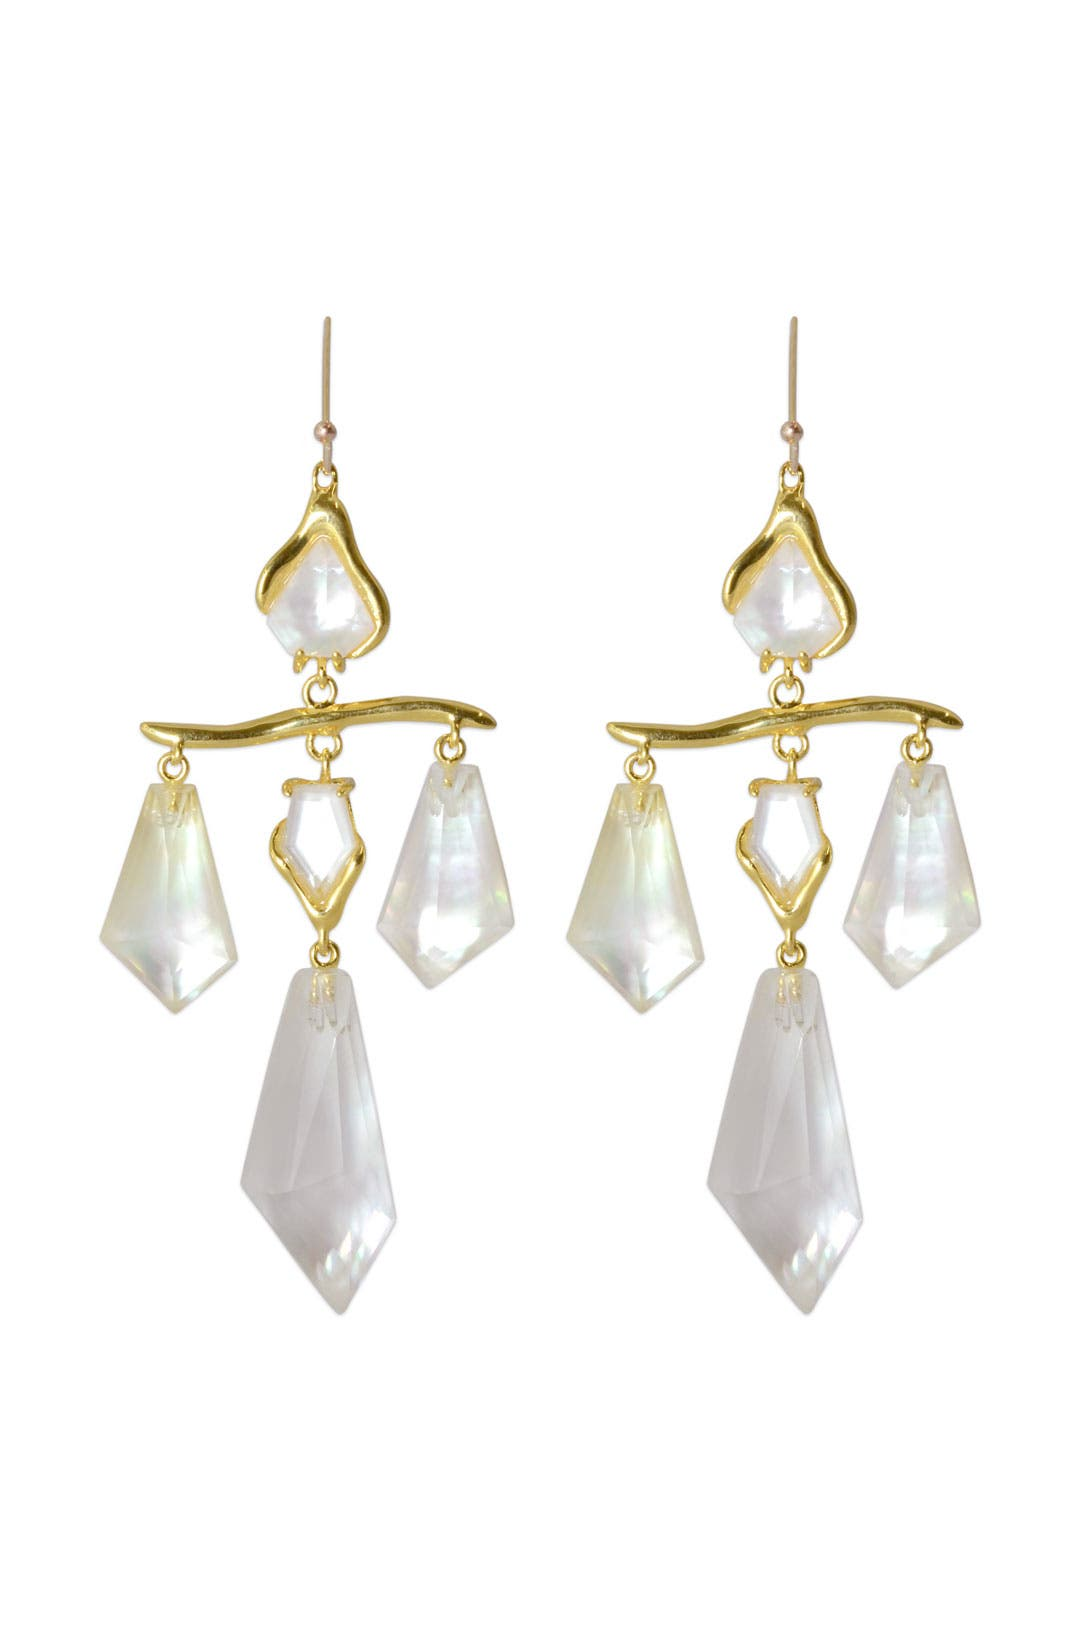 Quartz Scale Chandelier Earrings by Alexis Bittar